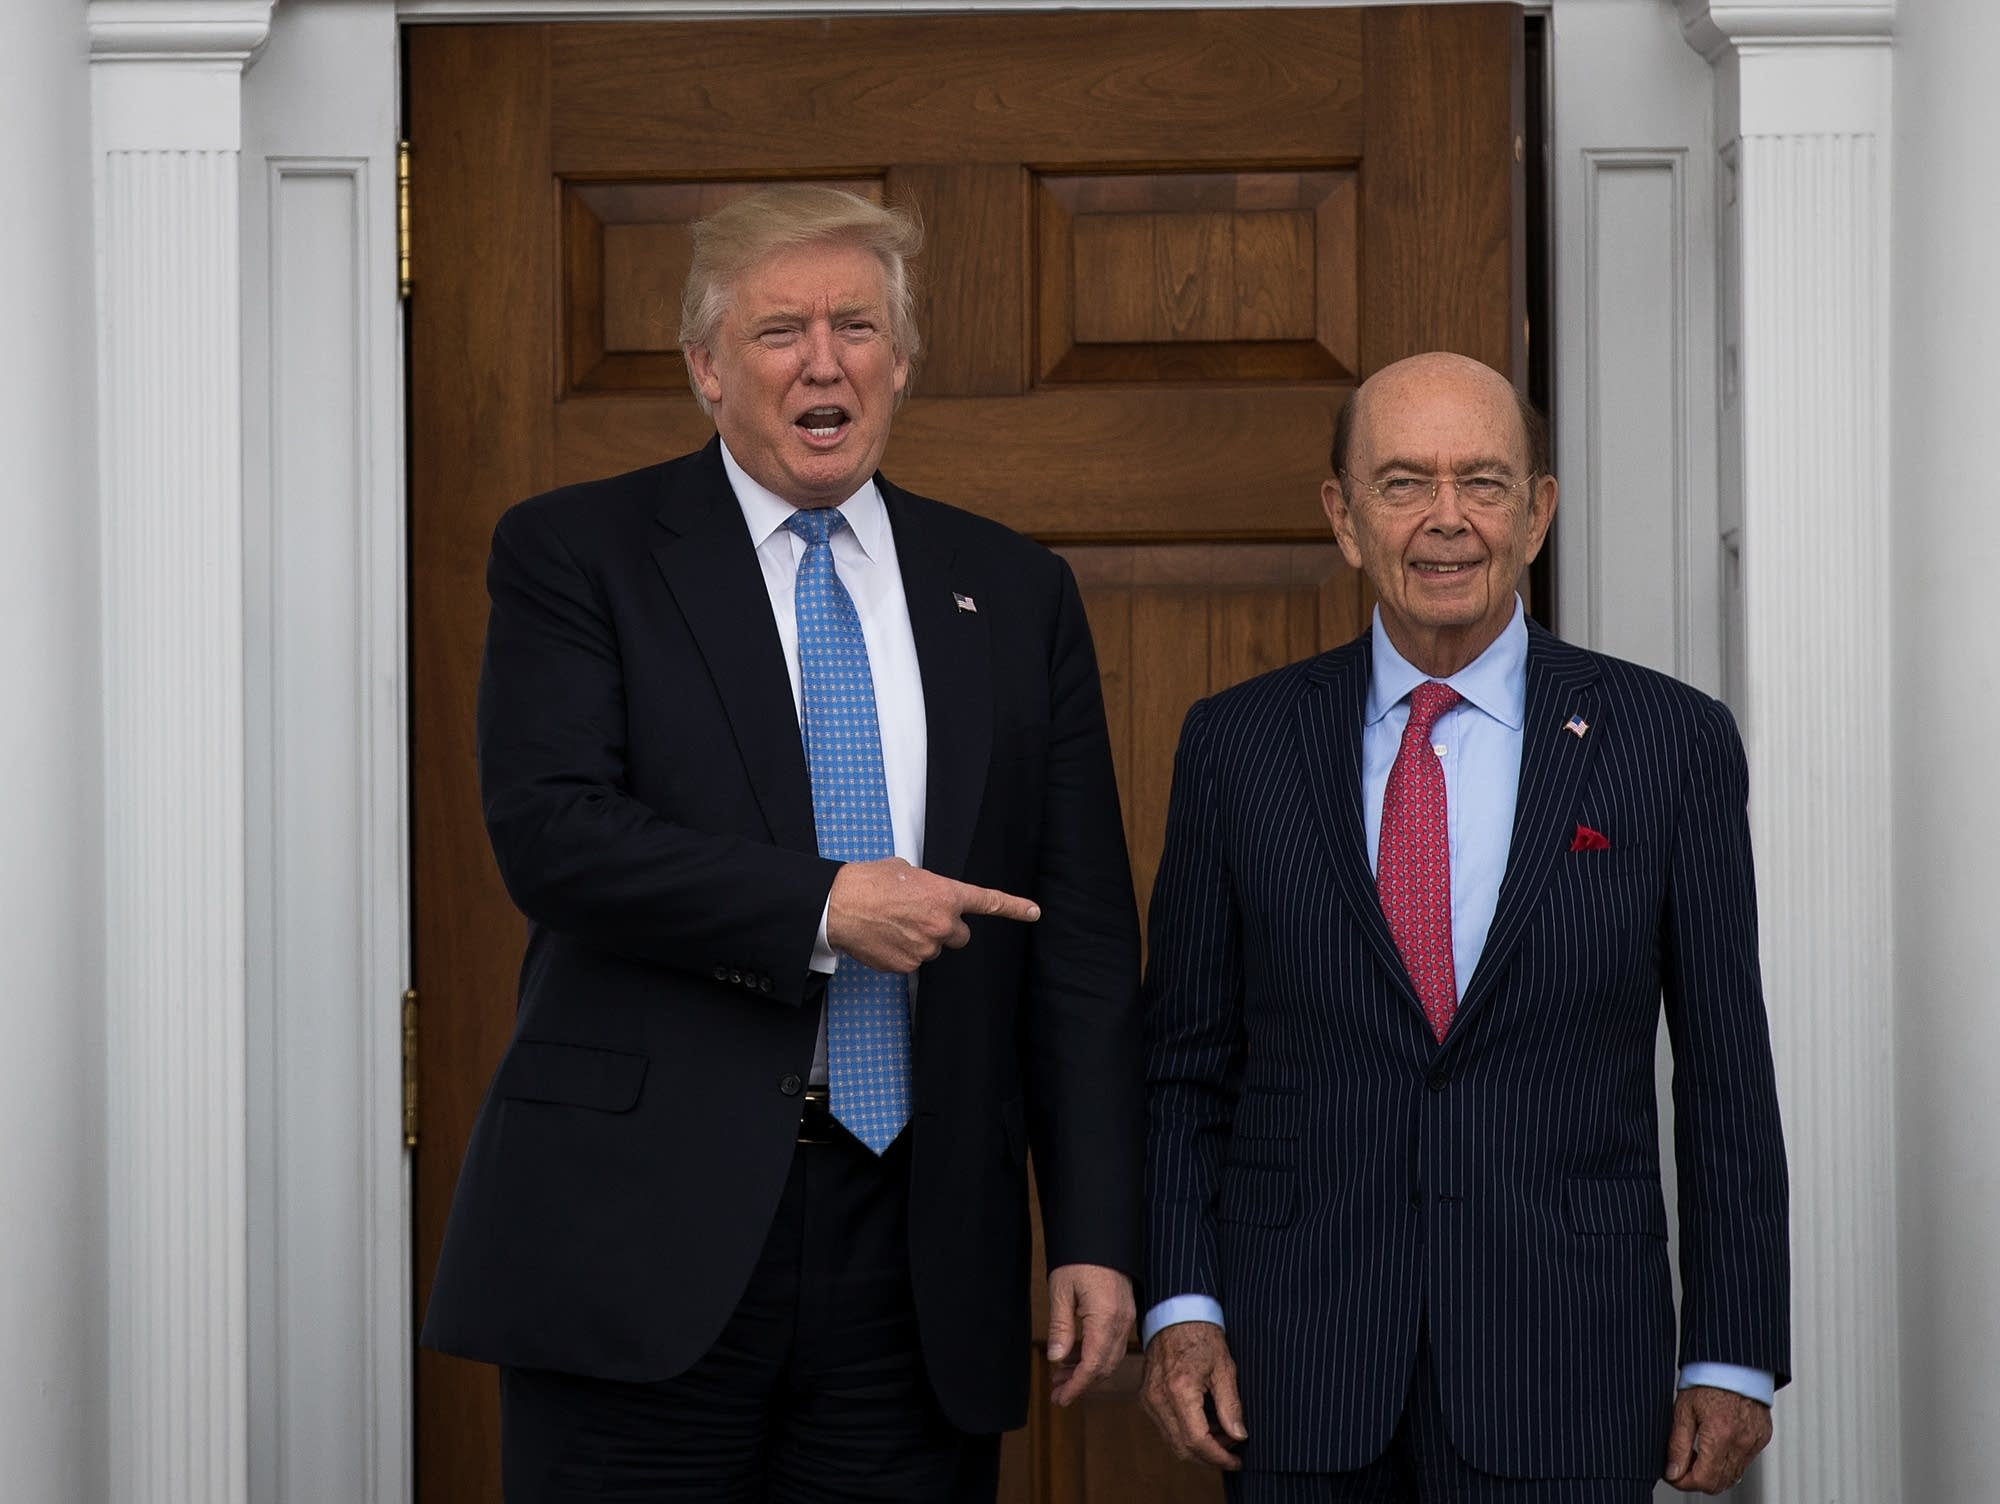 Donald Trump and Wilbur Ross